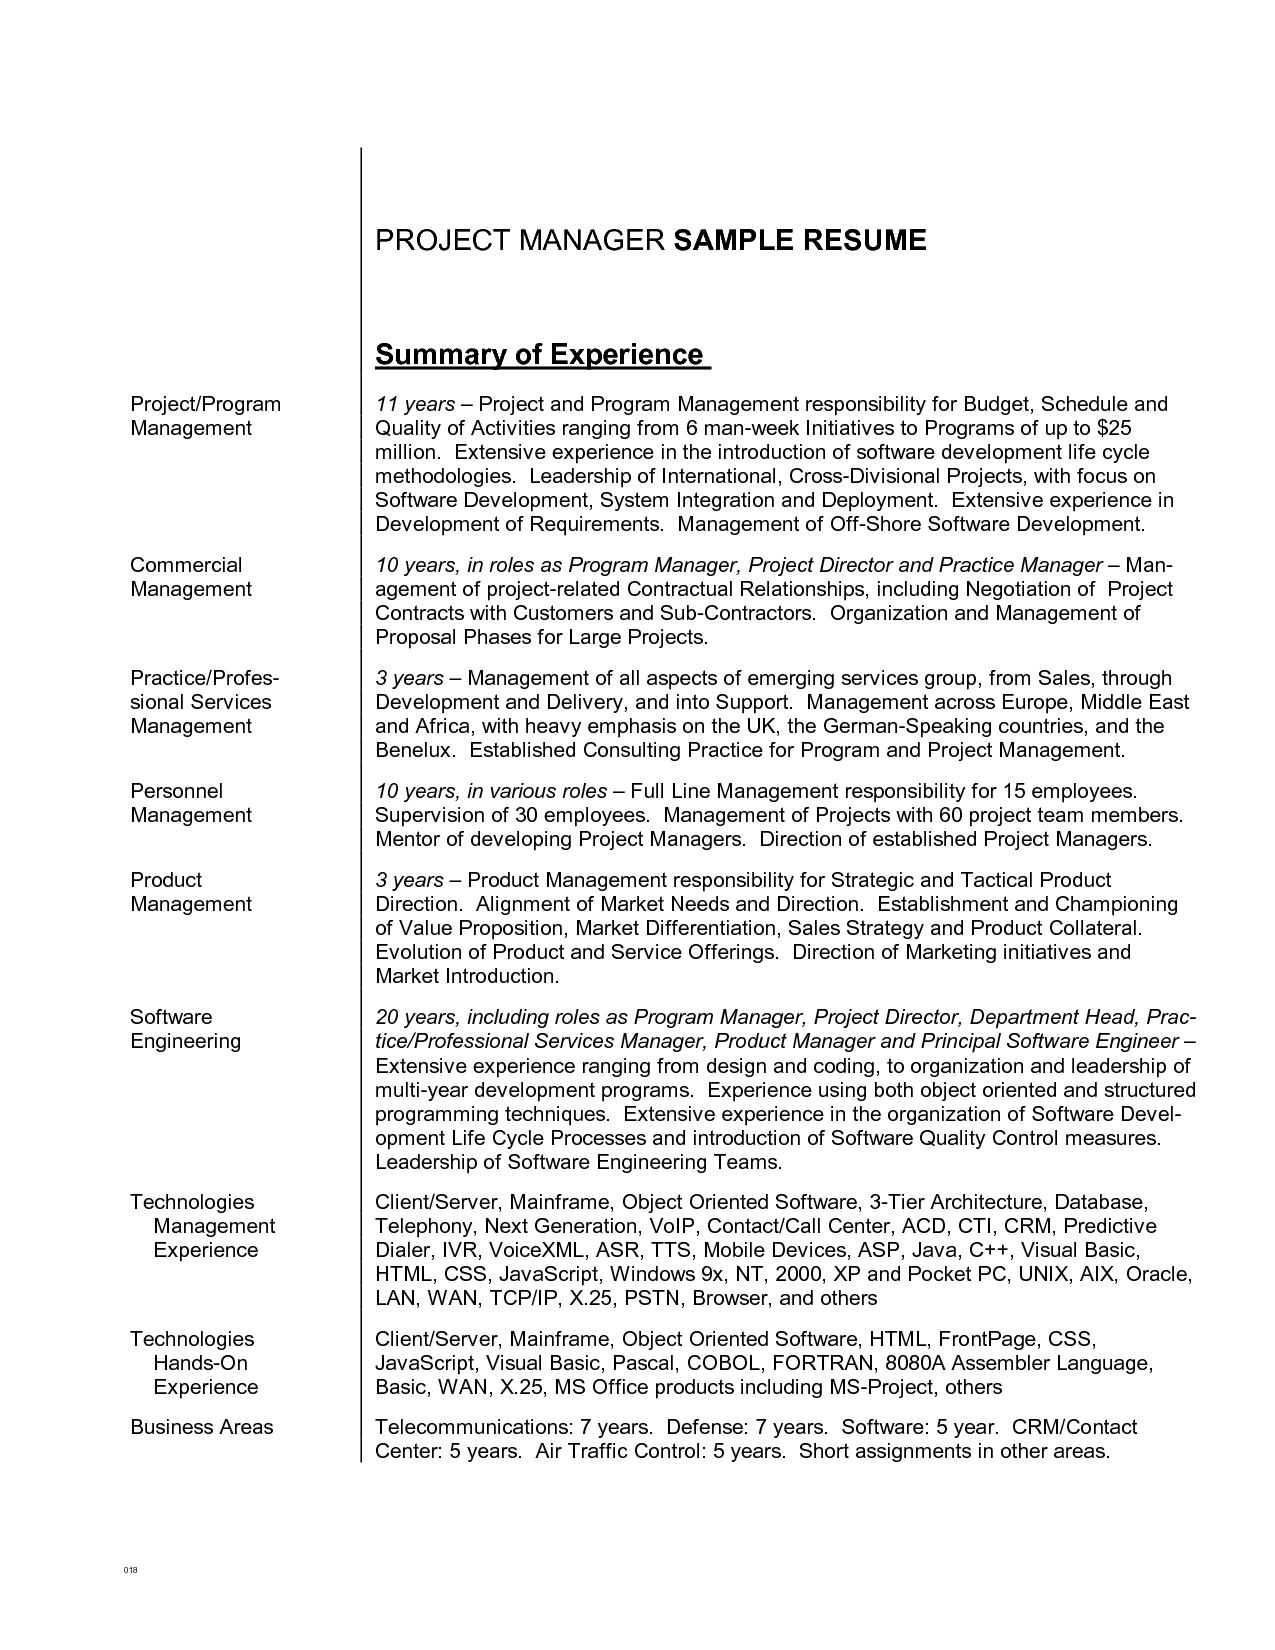 Resume Summary Statement Examples Customer Service Fascinating Summary On Resume Examples  Resume  Pinterest  Writing Services .